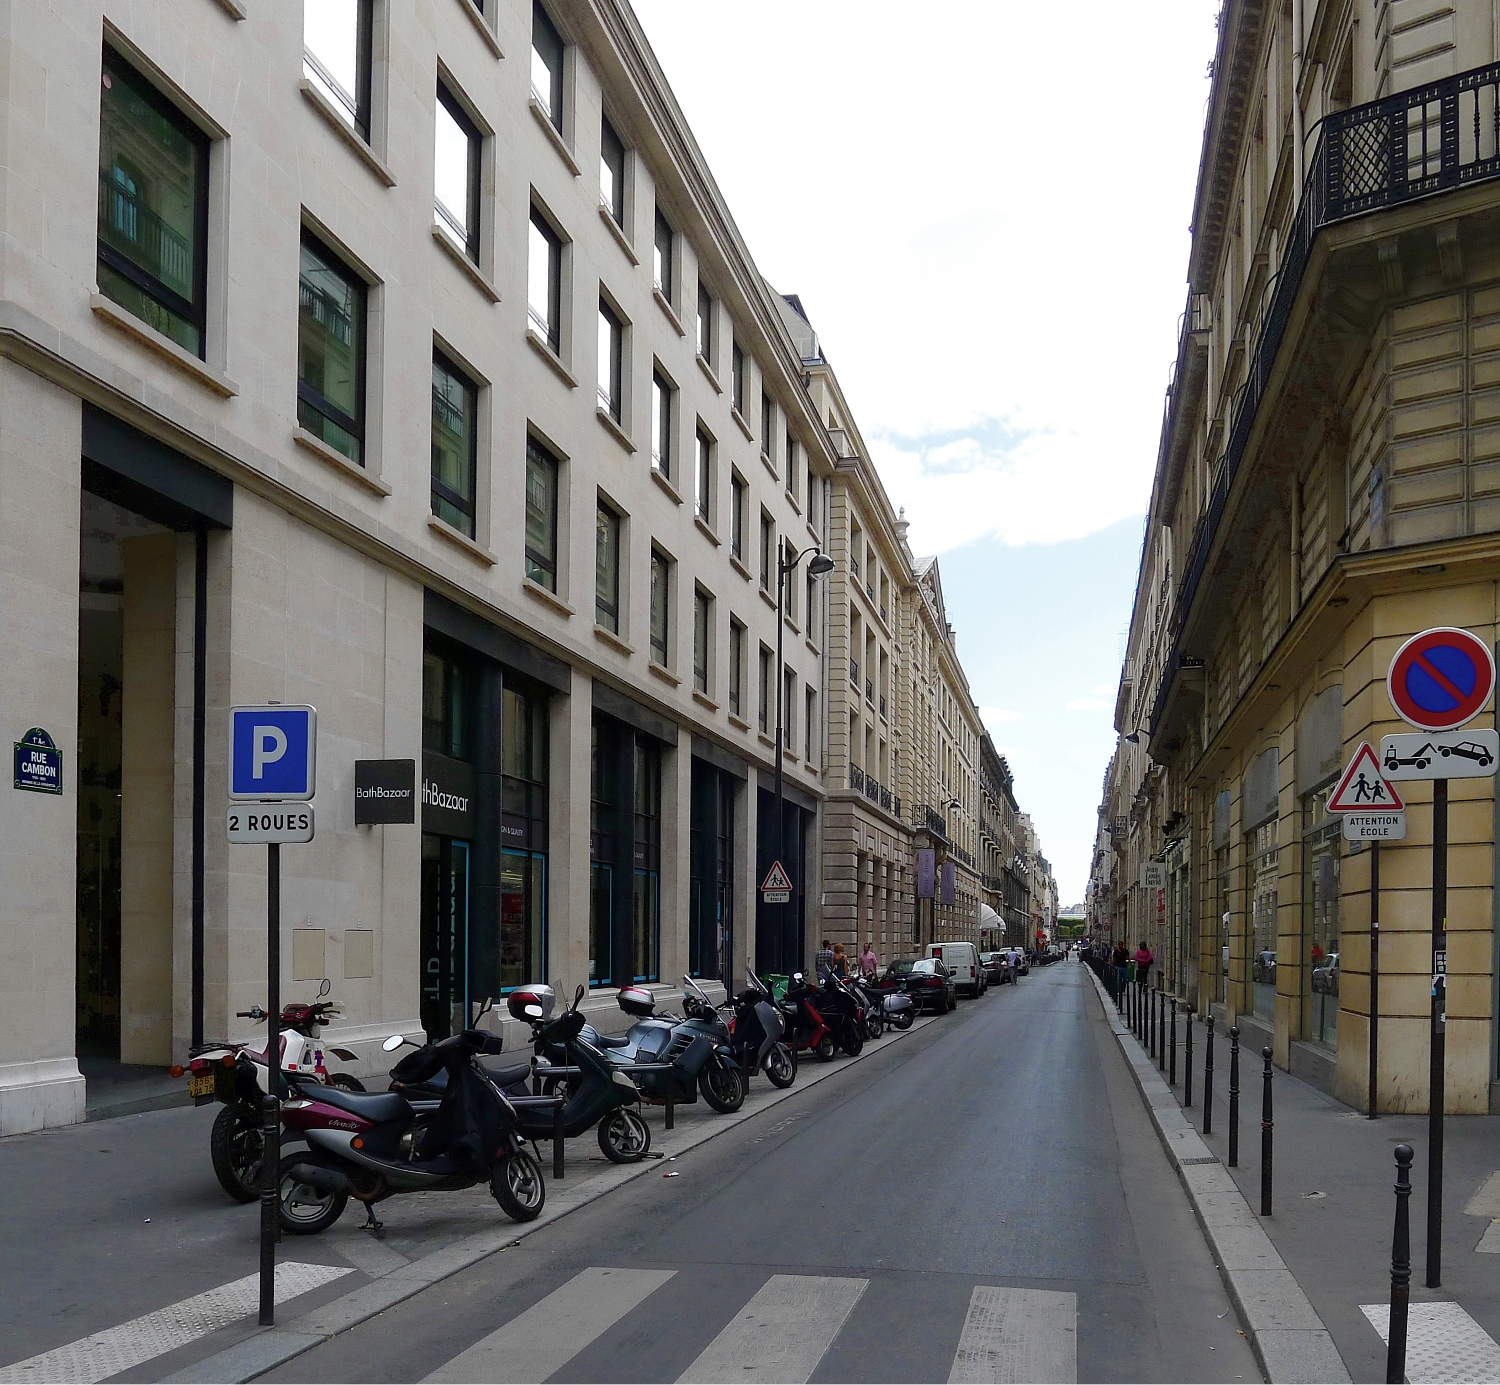 Hotel Paris Rue St Honore